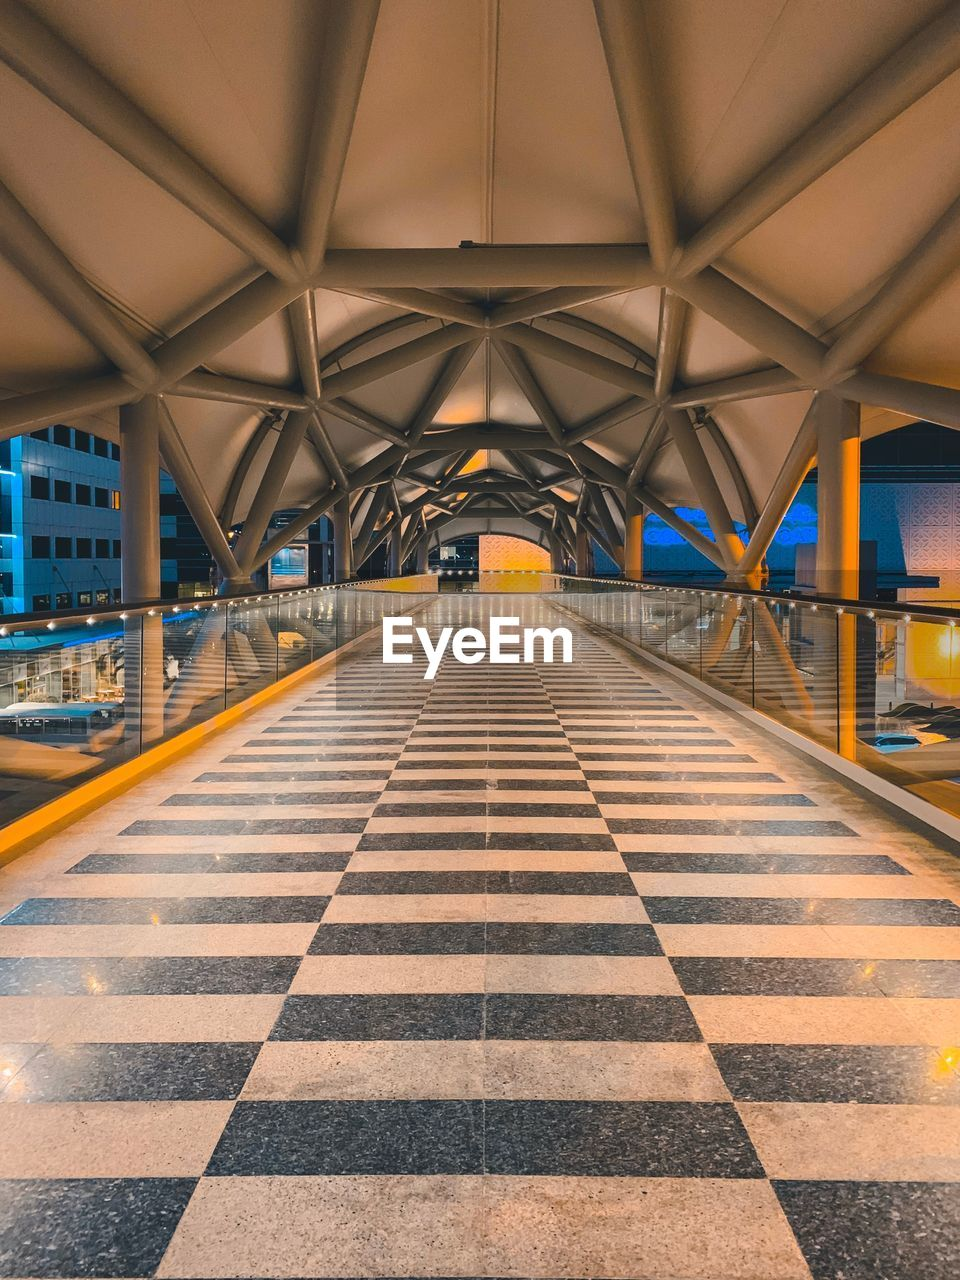 architecture, the way forward, built structure, transportation, direction, indoors, diminishing perspective, pattern, ceiling, empty, symbol, road marking, no people, bridge, connection, bridge - man made structure, absence, sign, checked pattern, vanishing point, flooring, architectural column, tiled floor